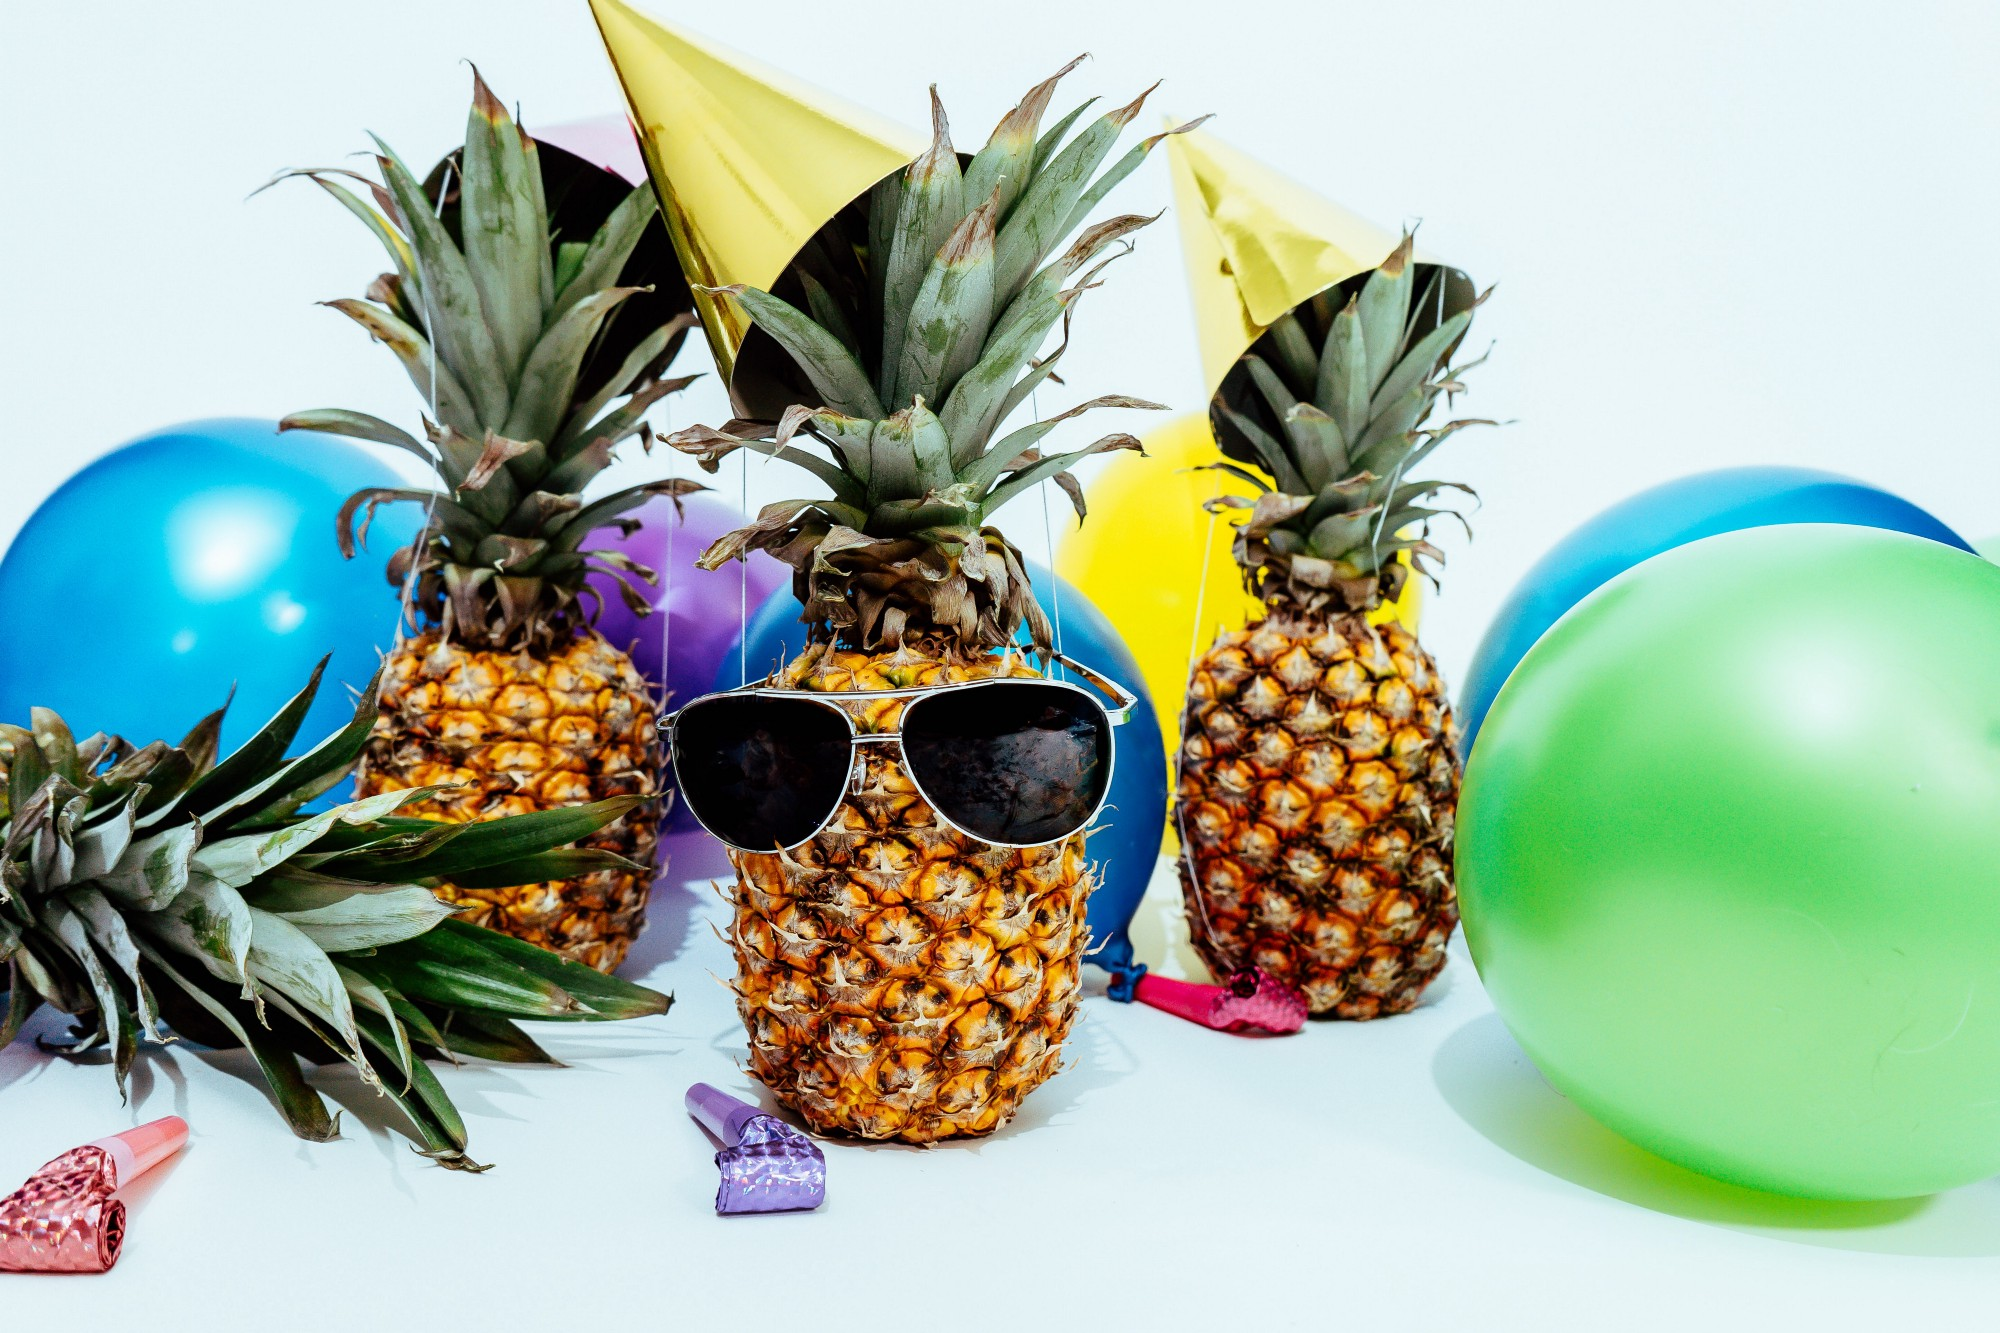 Three pineapples with party hats on and surrounded by birthday balloons